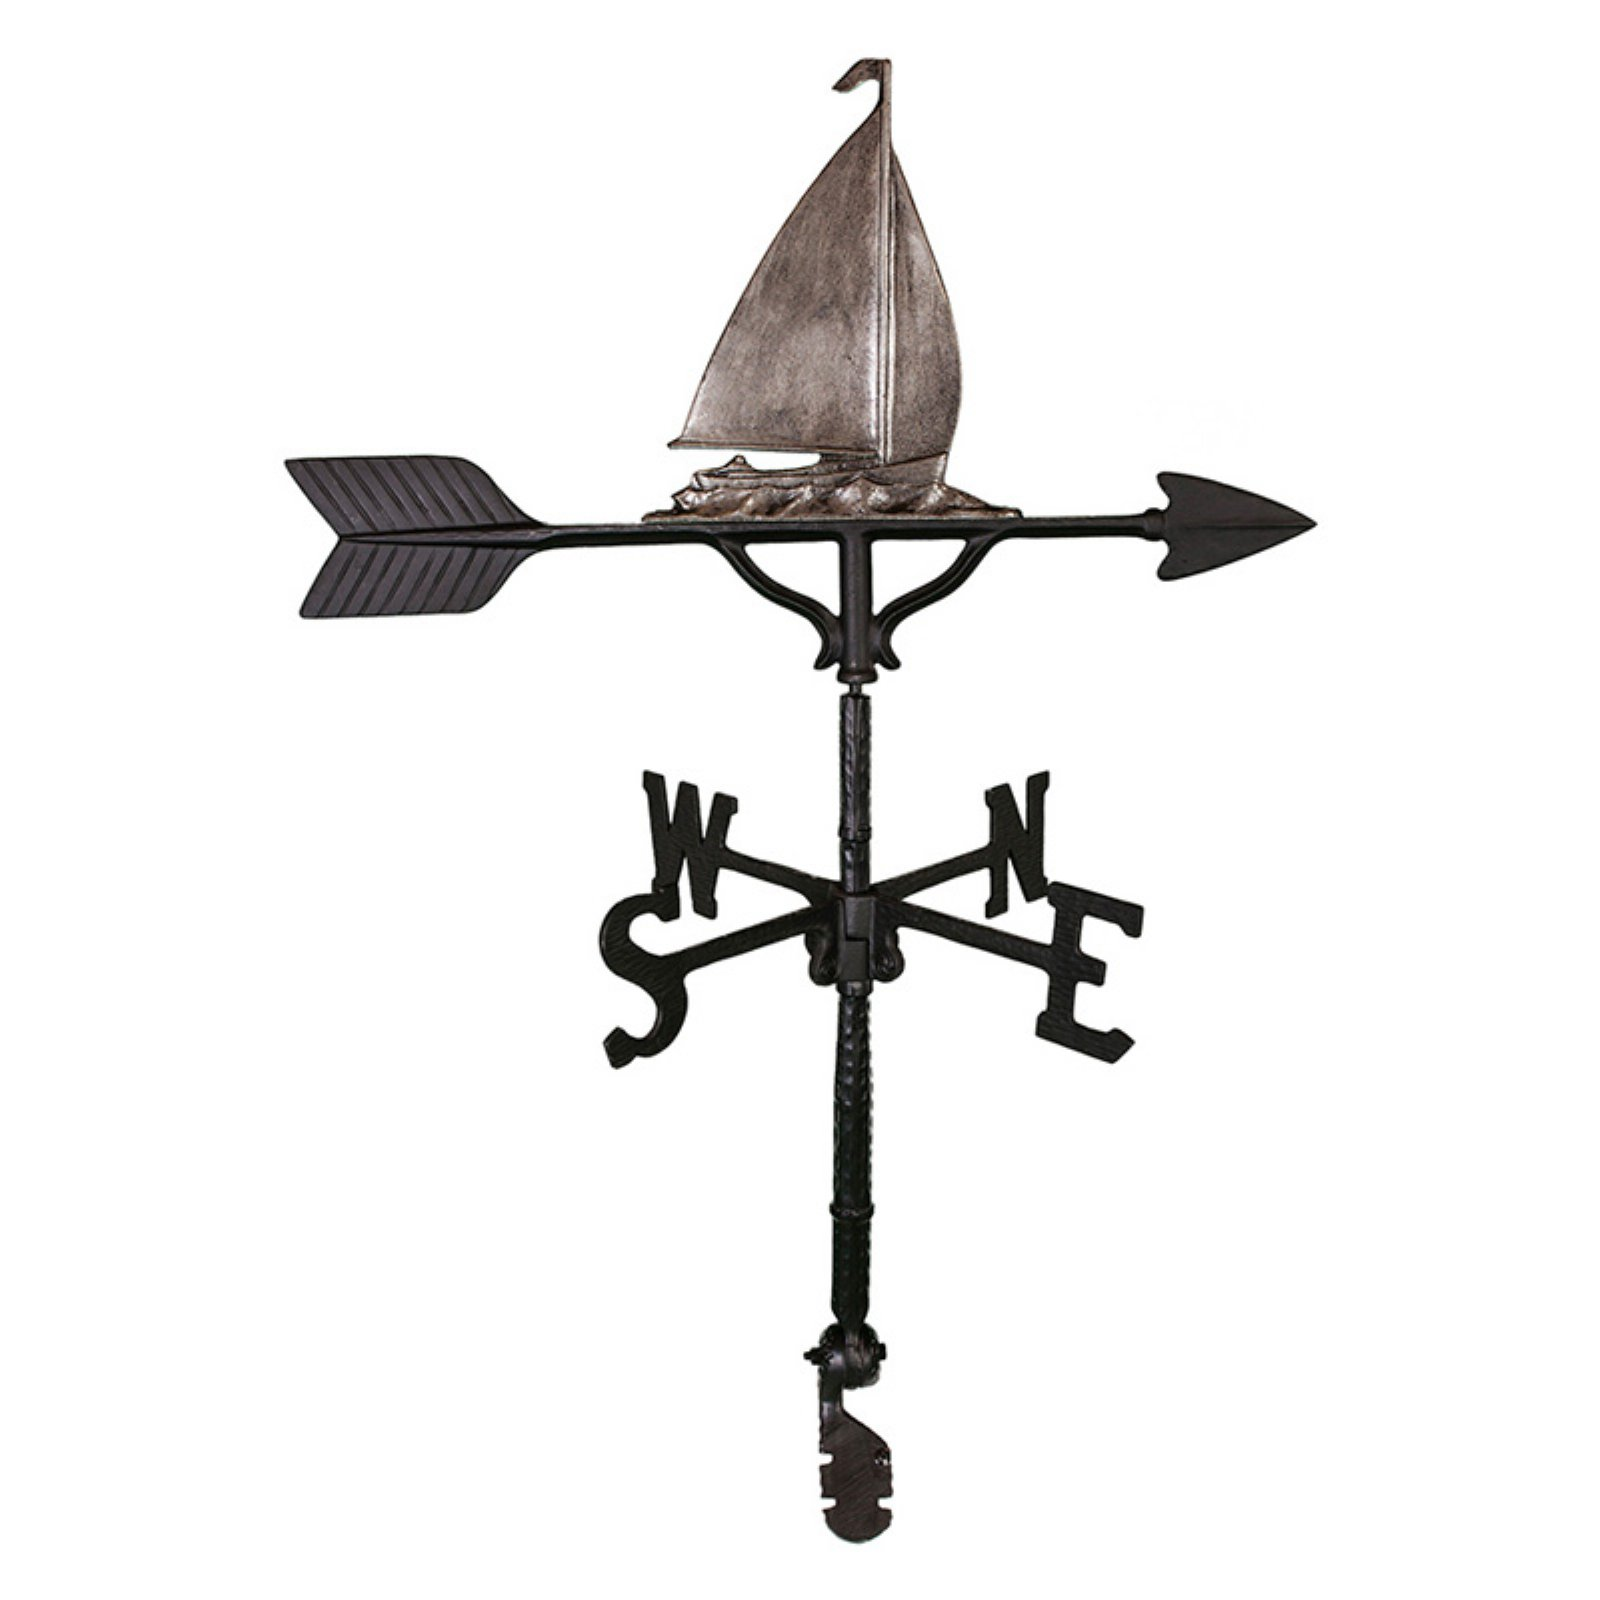 Swedish Iron Sailboat Weathervane 32 in. by Montague Metal Products